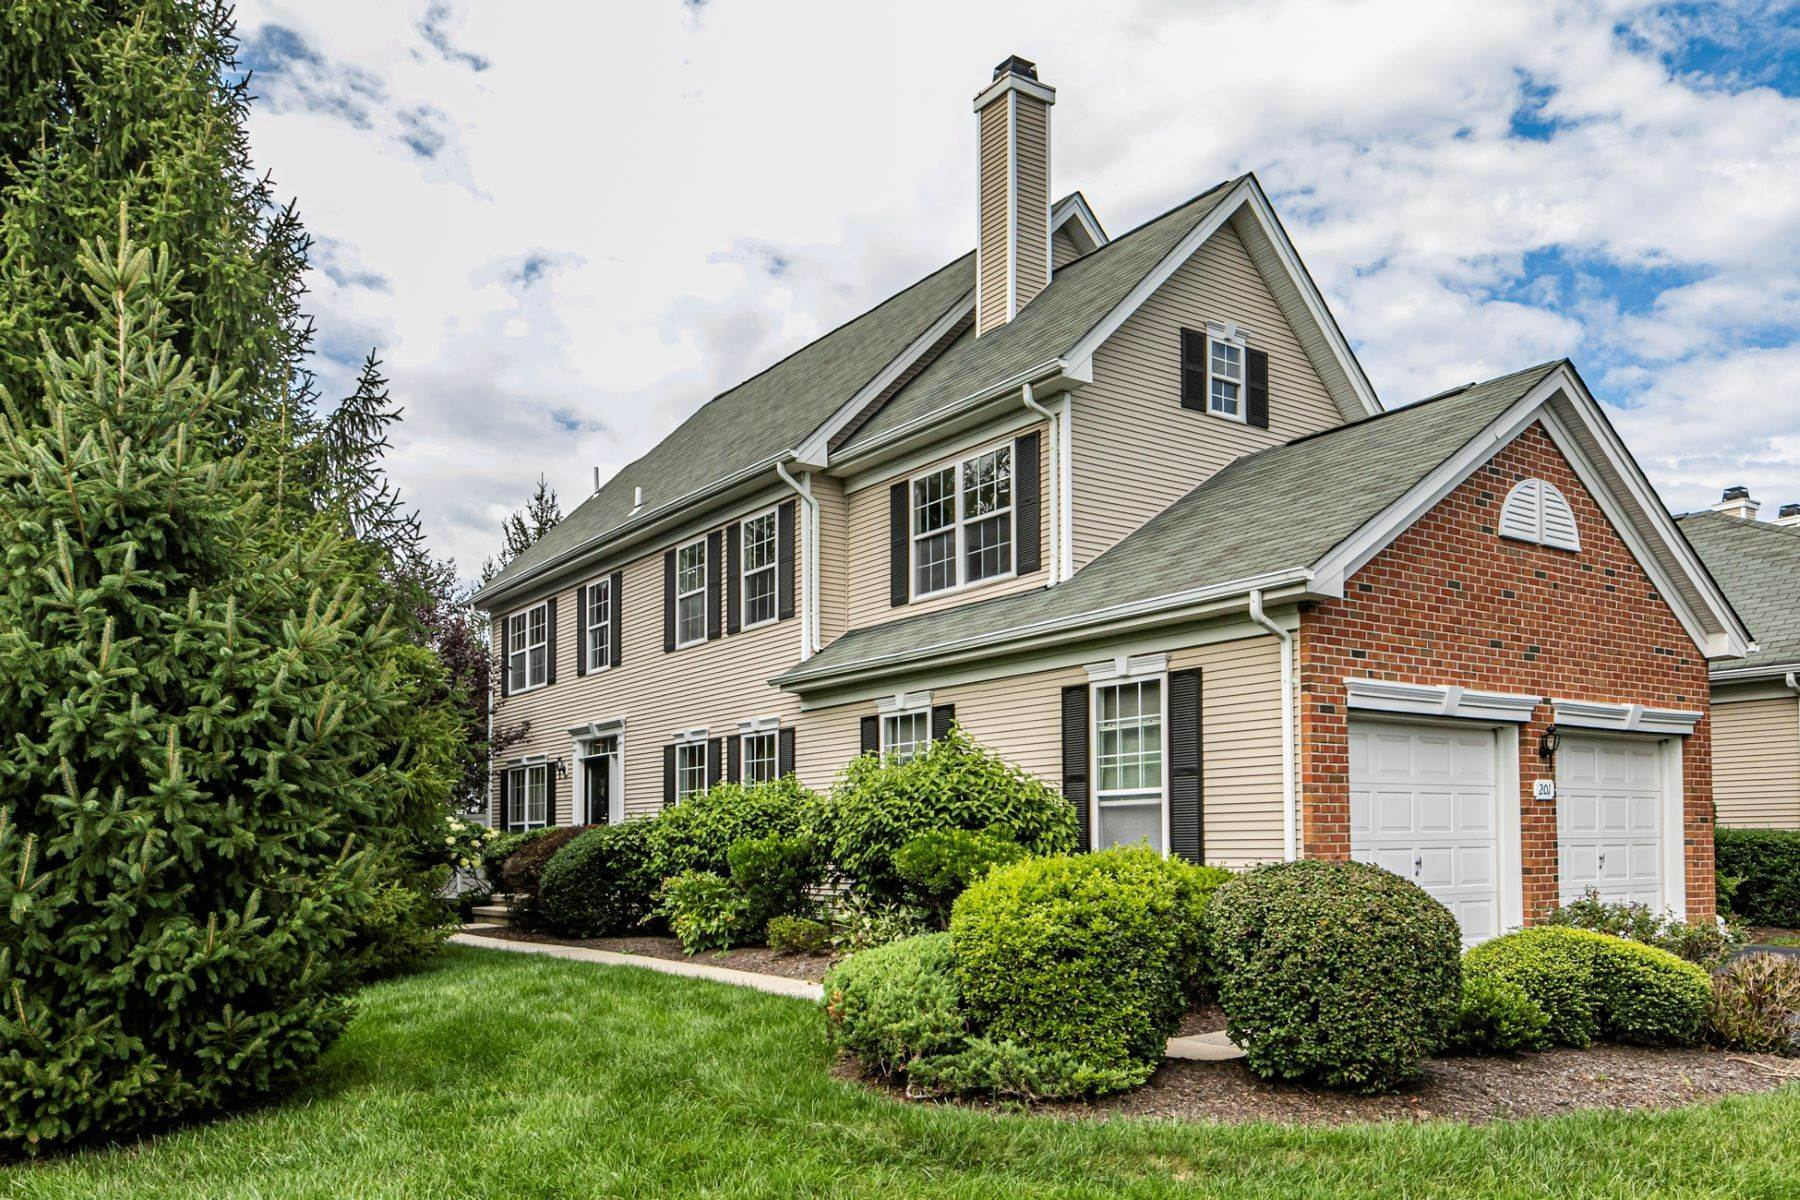 Condominiums for Sale at A Rare Four Bedroom End-Unit In Twin Pines 201 Colt Street, Pennington, New Jersey 08534 United States